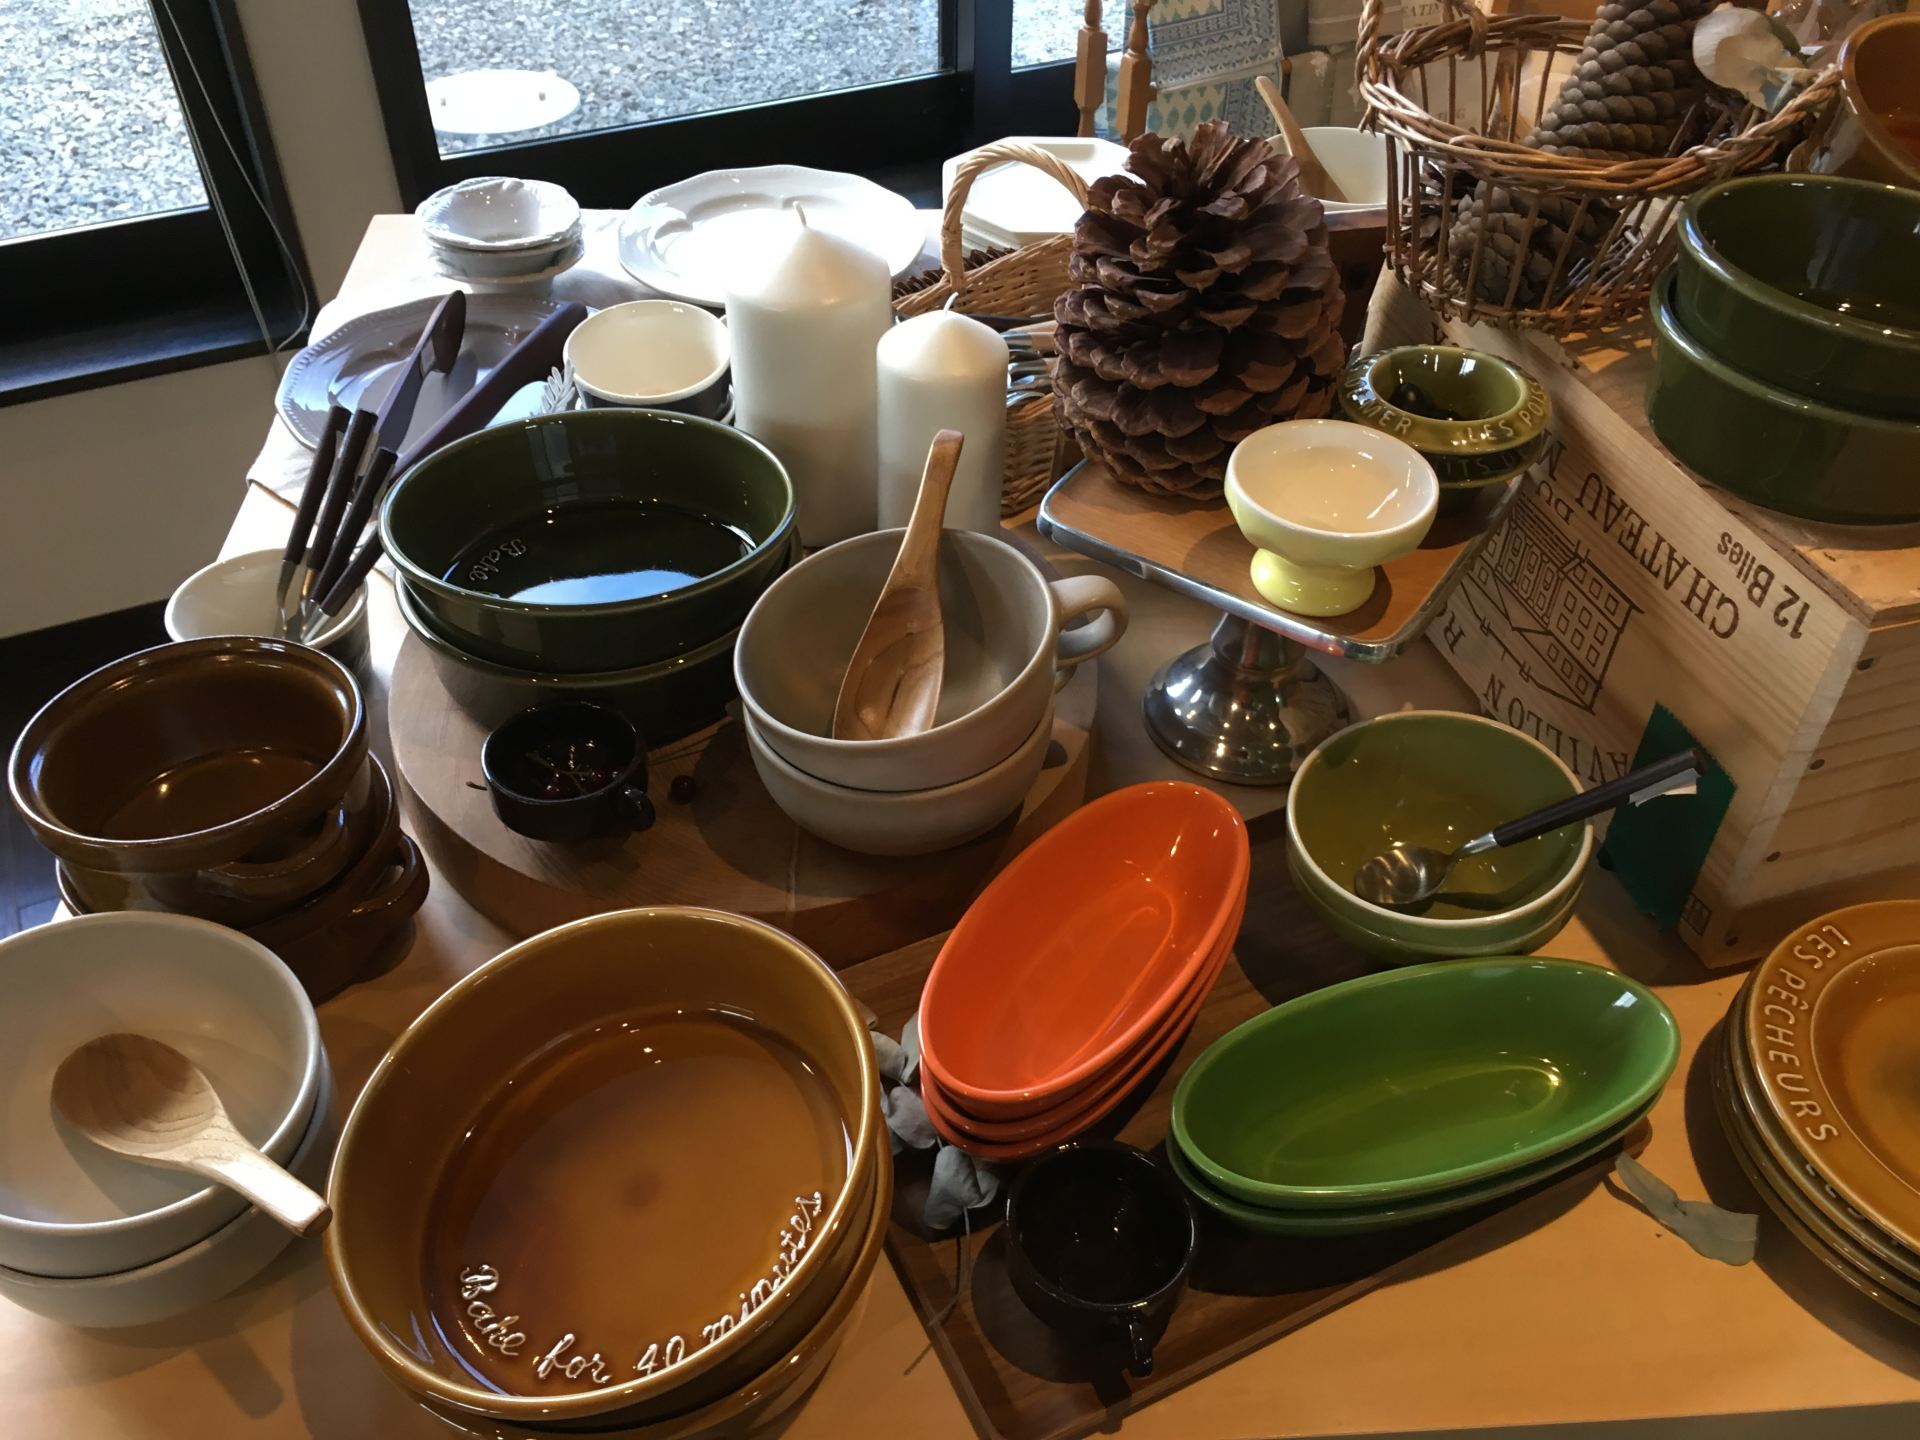 Stylish dishes and trinkets are sold as well.